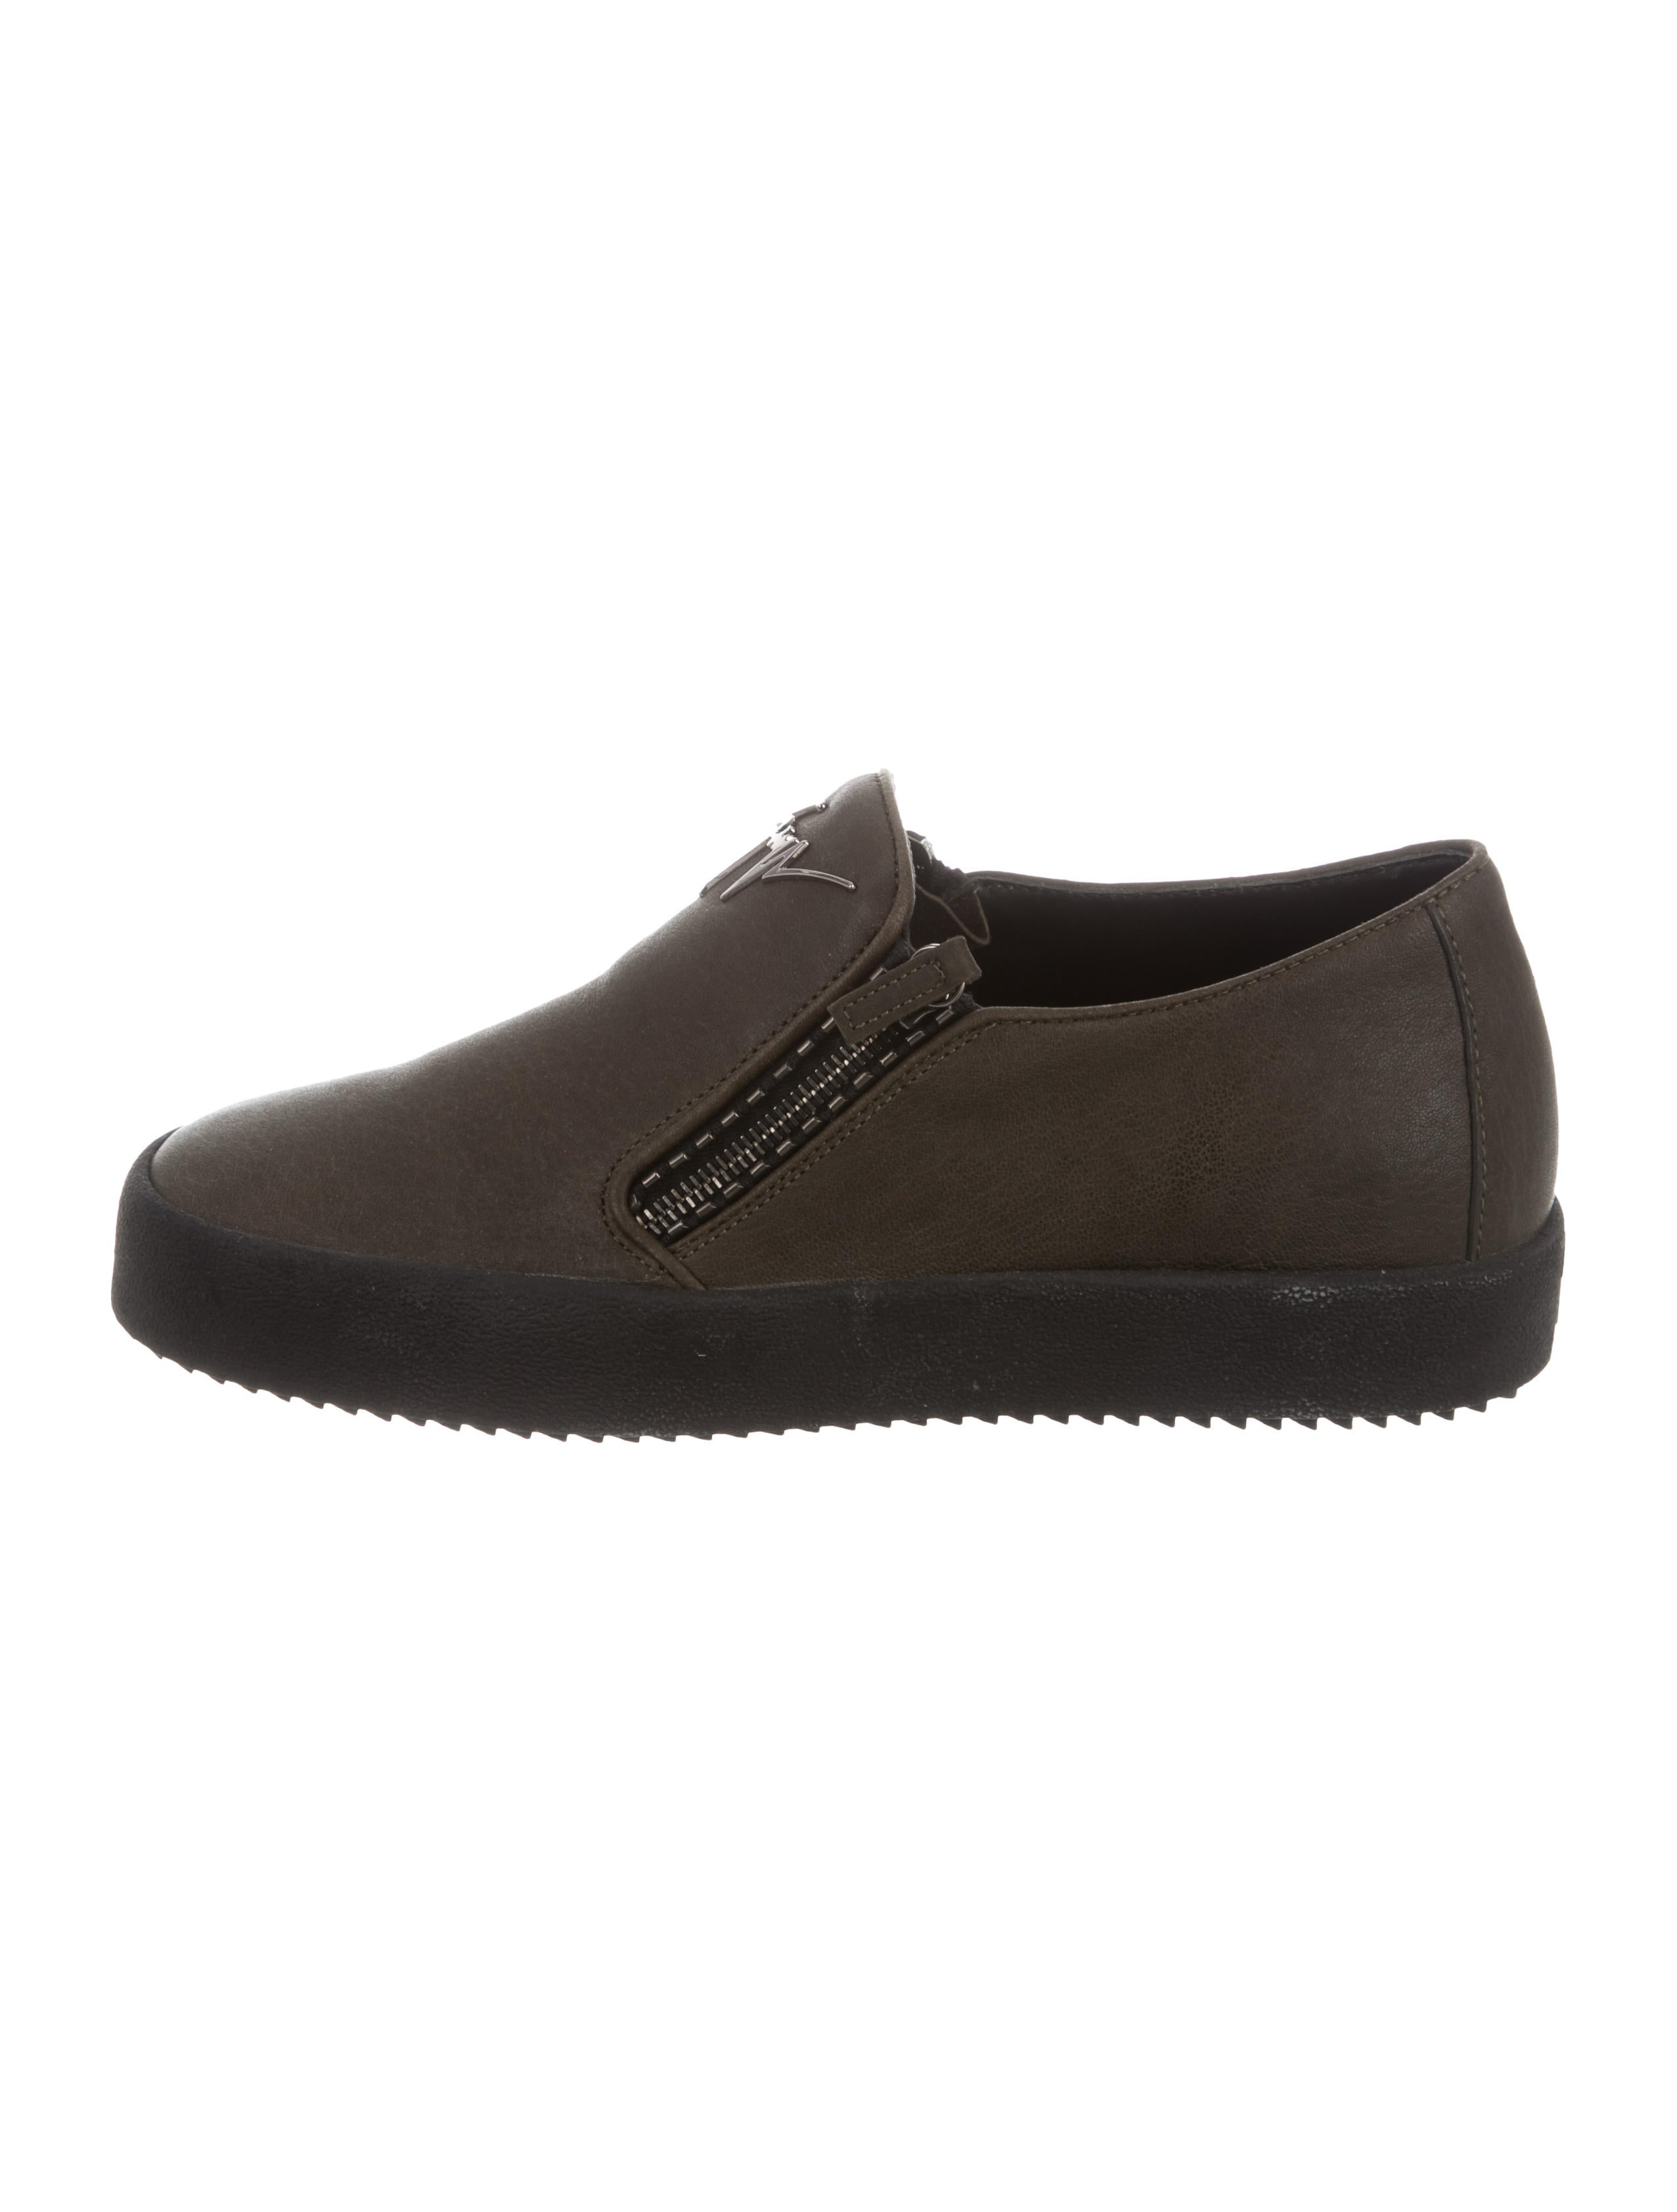 Versace Shoes Tk Maxx   OIS Group